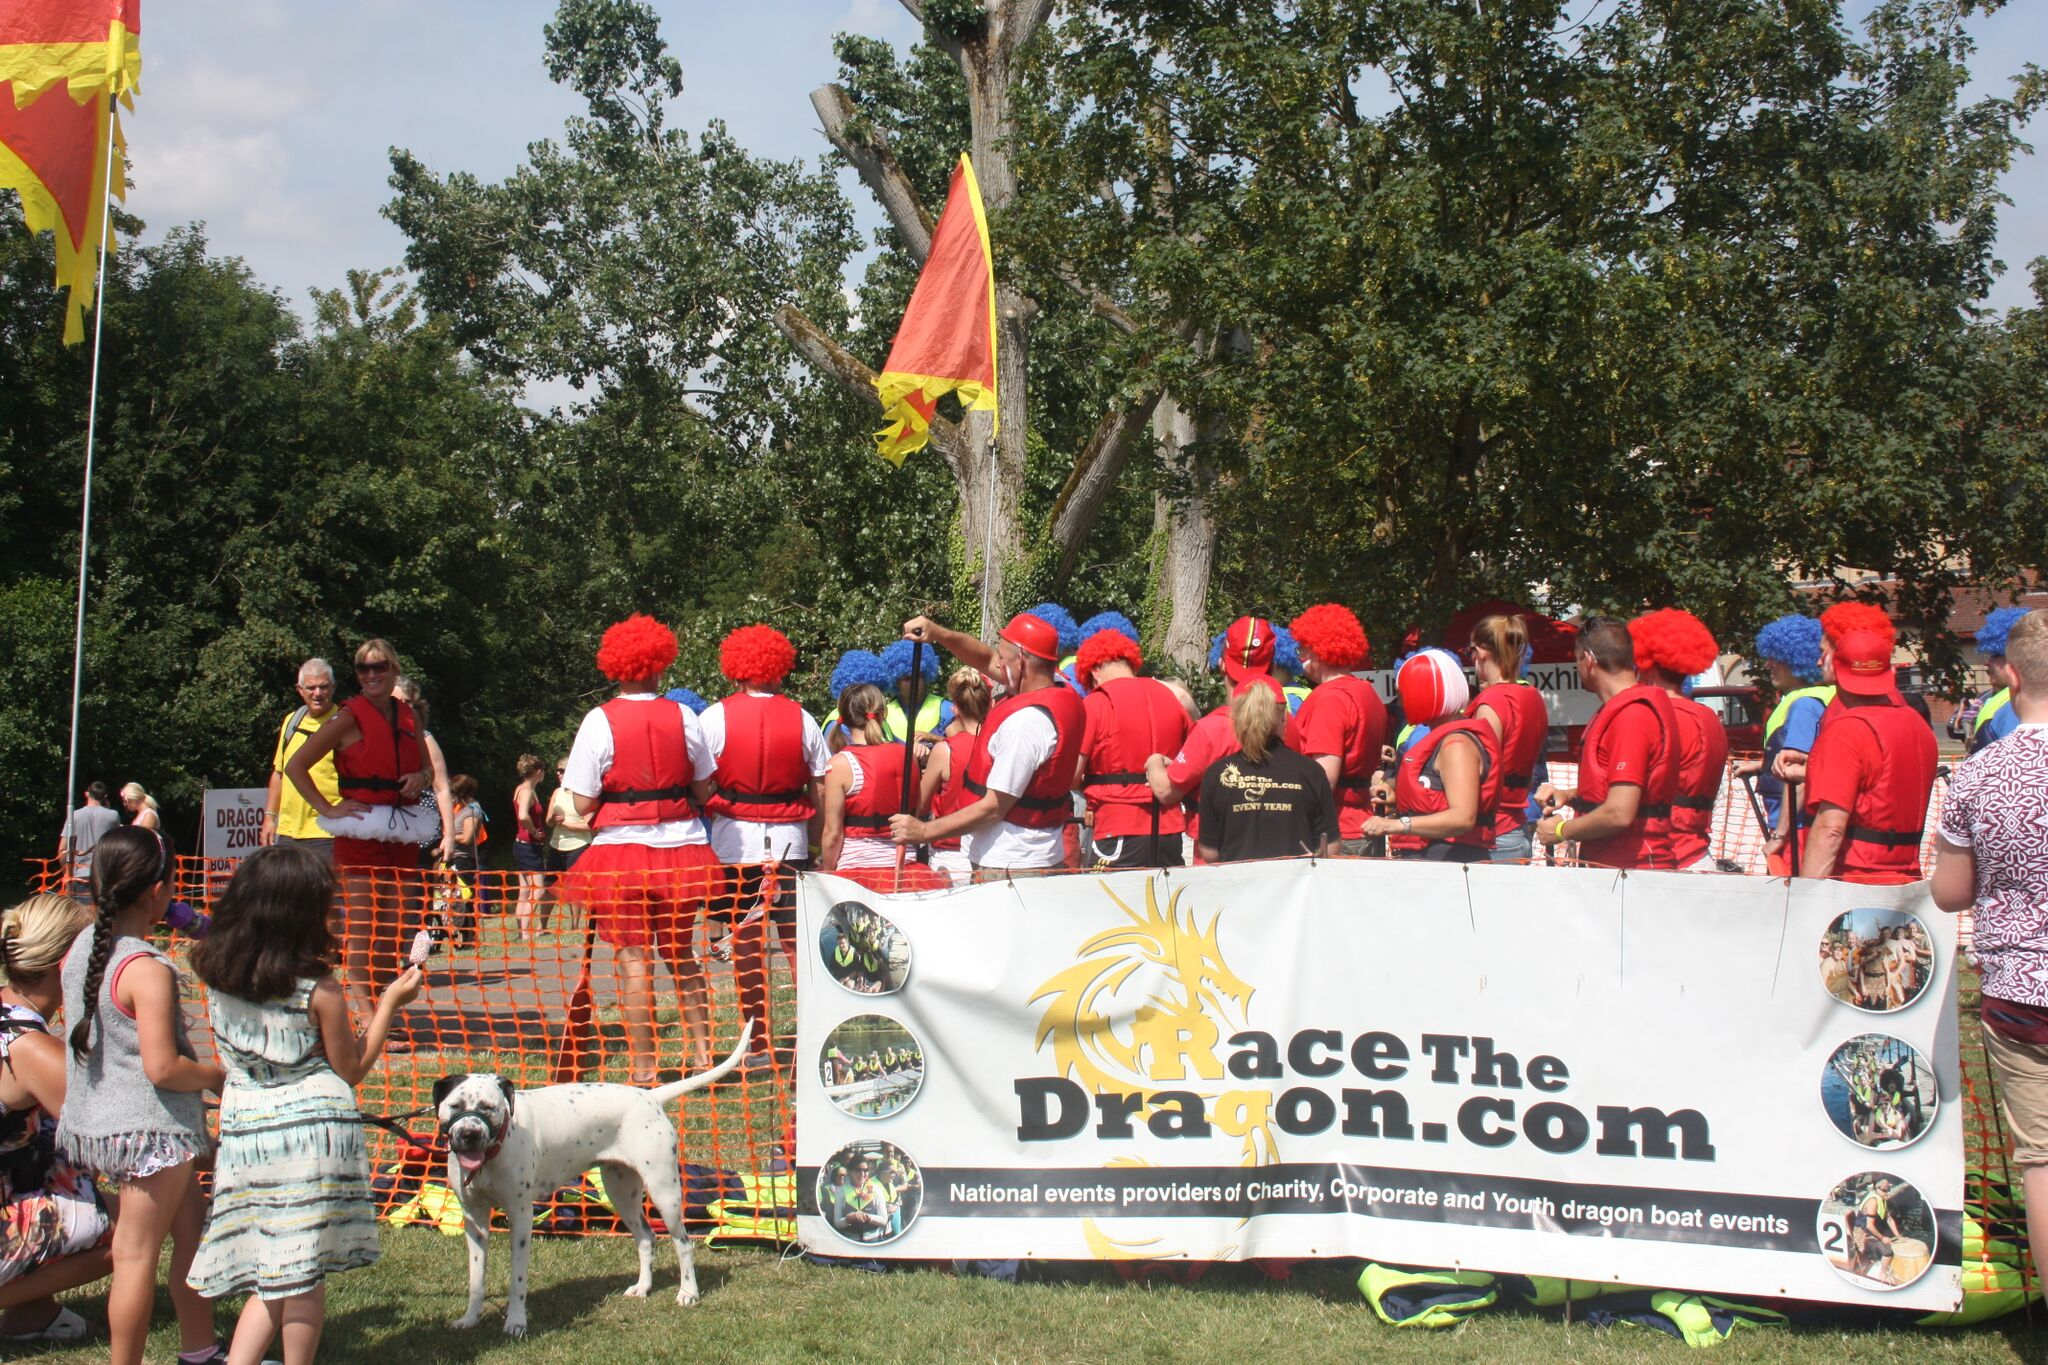 Charity Dragon Boat Racing Events